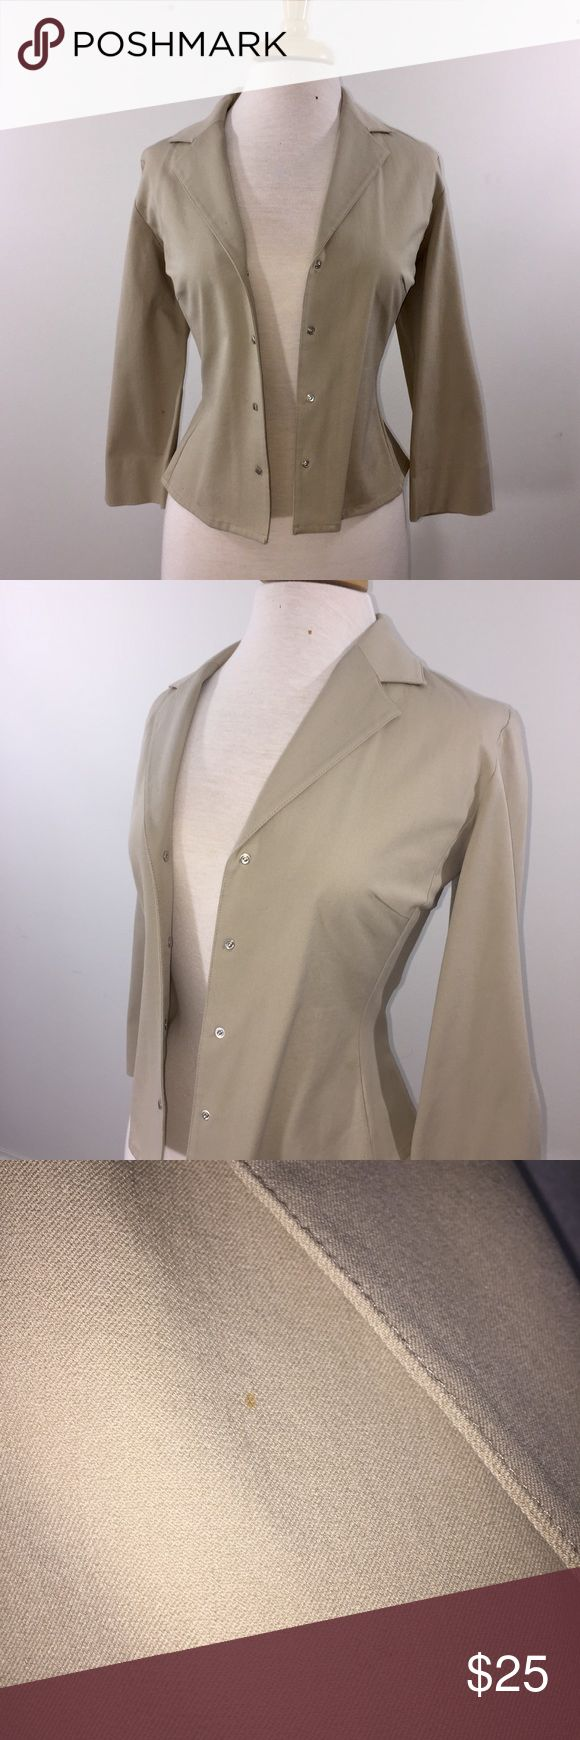 Khaki Colored Slimming Thalian Blazer Jacket This is a great khaki-colored blazer to add into your wardrobe! It is a slimming jacket with four silver Toned buttons snap shut.   Flattering cut & fabric has a stretch to it  There is a small spot on the right breast of the jacket (pictured). Only noticeable when looking for it - close enough to the collar that it nearly covers it. Minor flaw reflected in price.   Size 10 Thalian (purchased at Nordstrom) Originally $128 98% cotton 2% lycra…